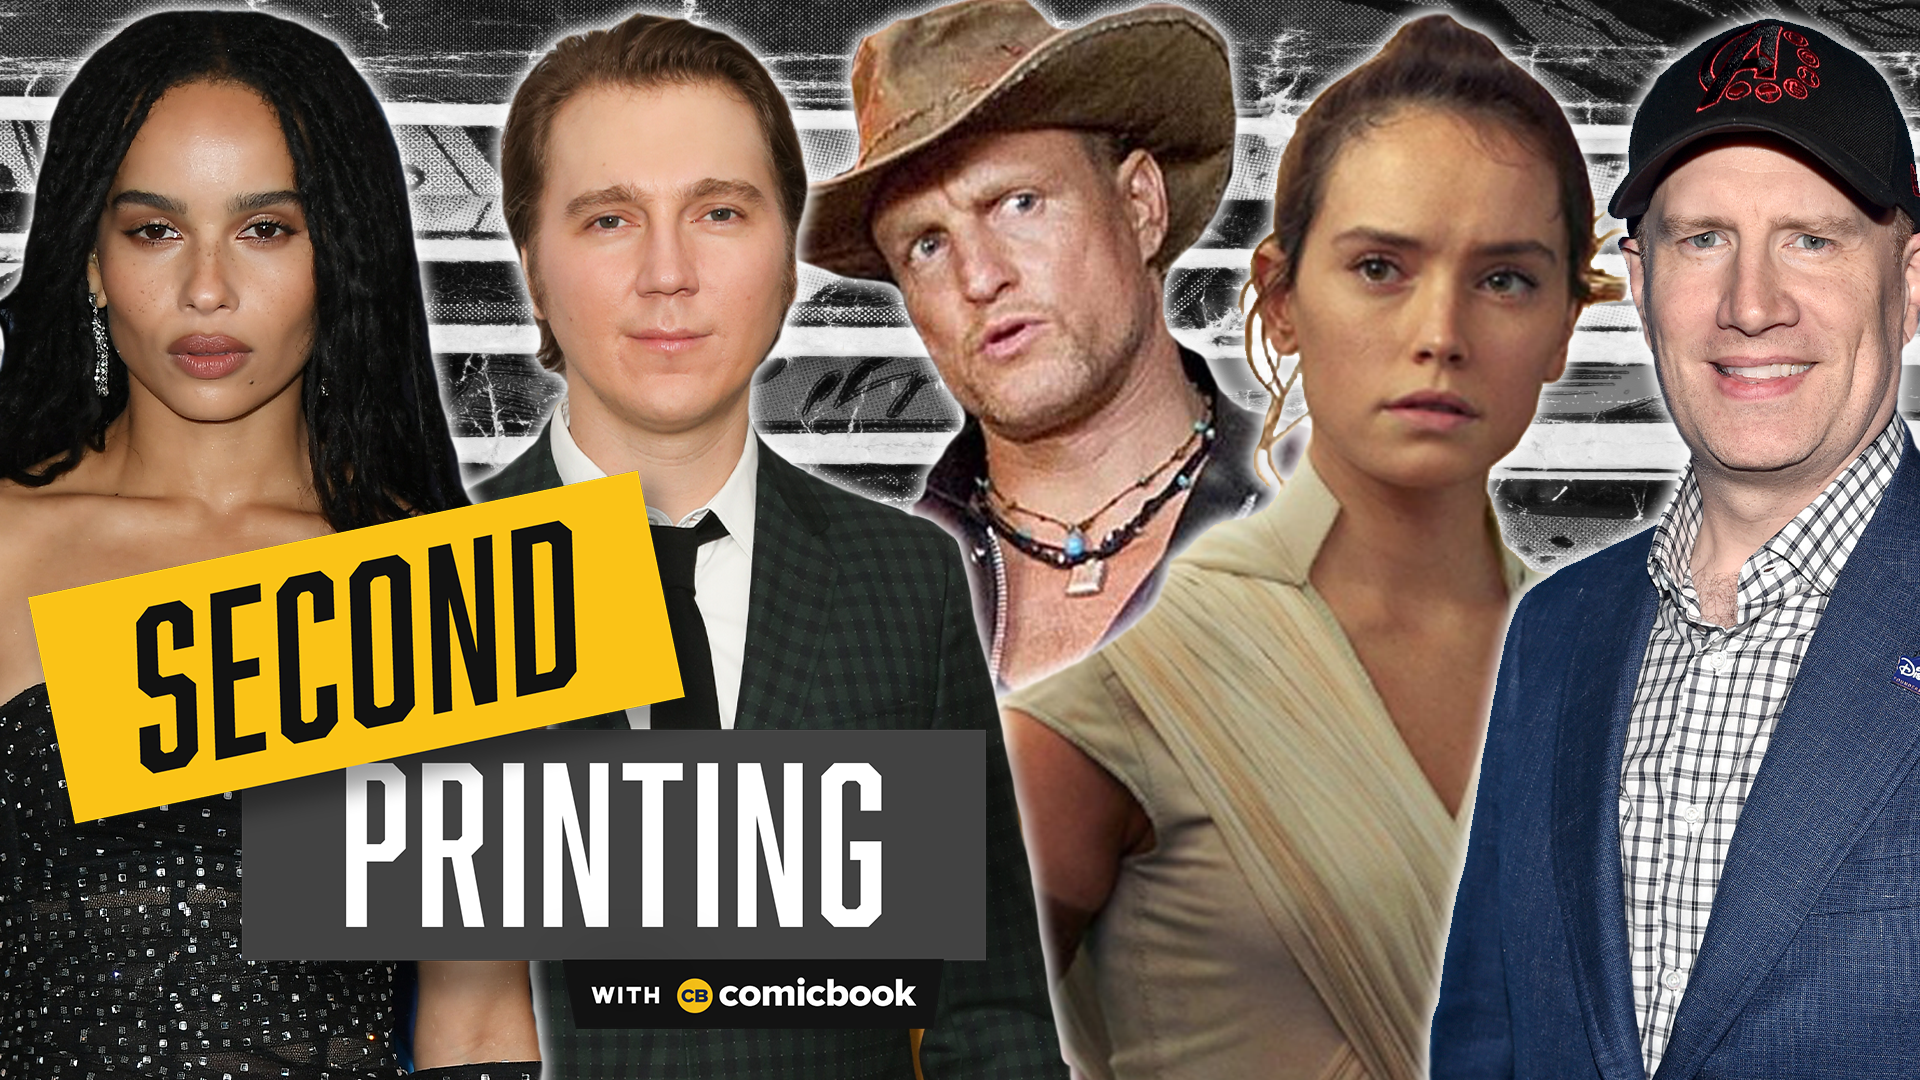 Batman Casting, Huge New Marvel Boss, and a Star Wars Trailer -- Second Printing! screen capture